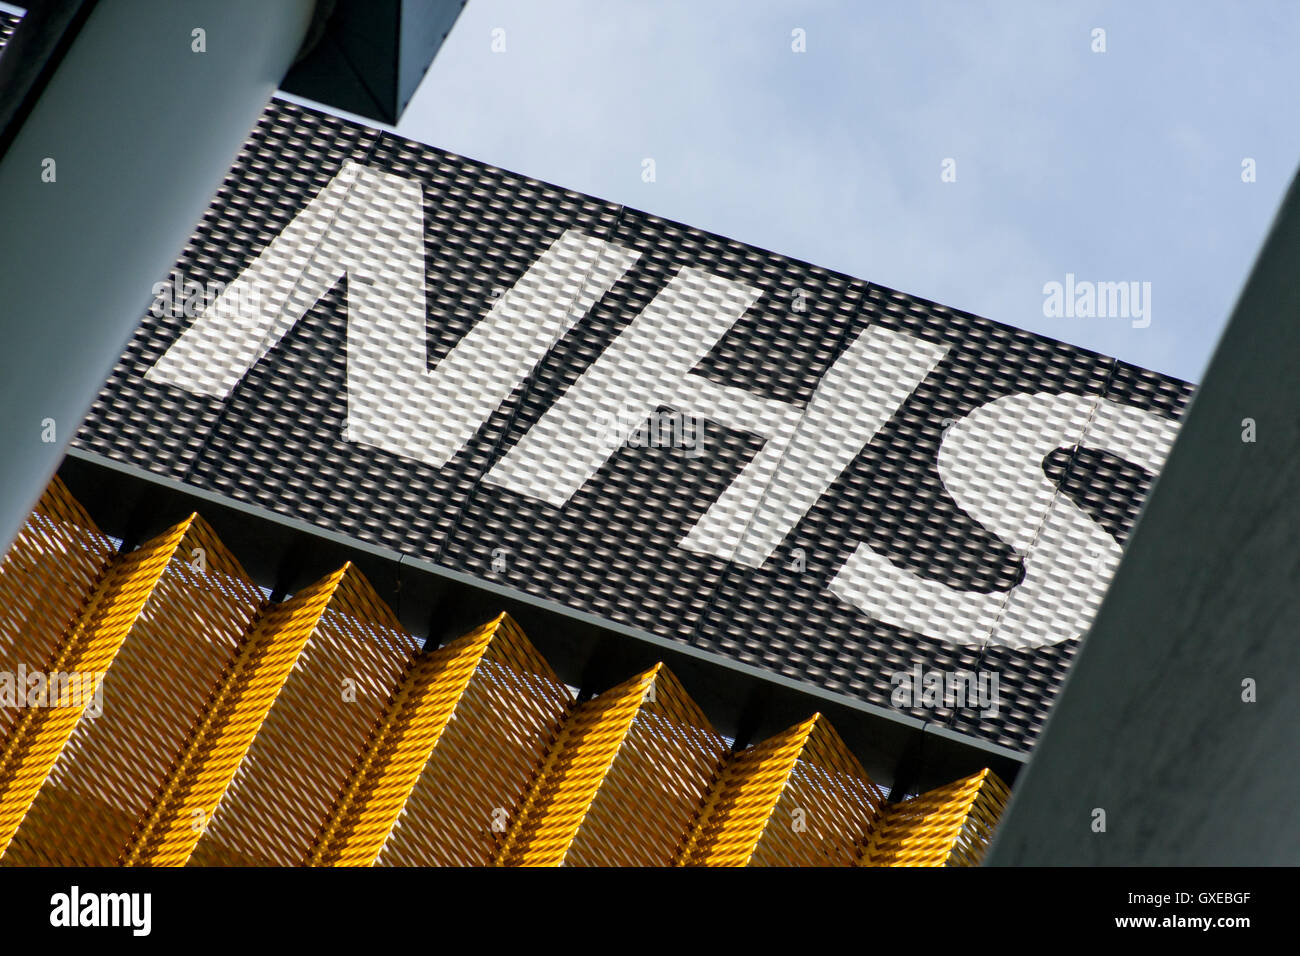 NHS Sign on a Multi Story Car Park - Stock Image